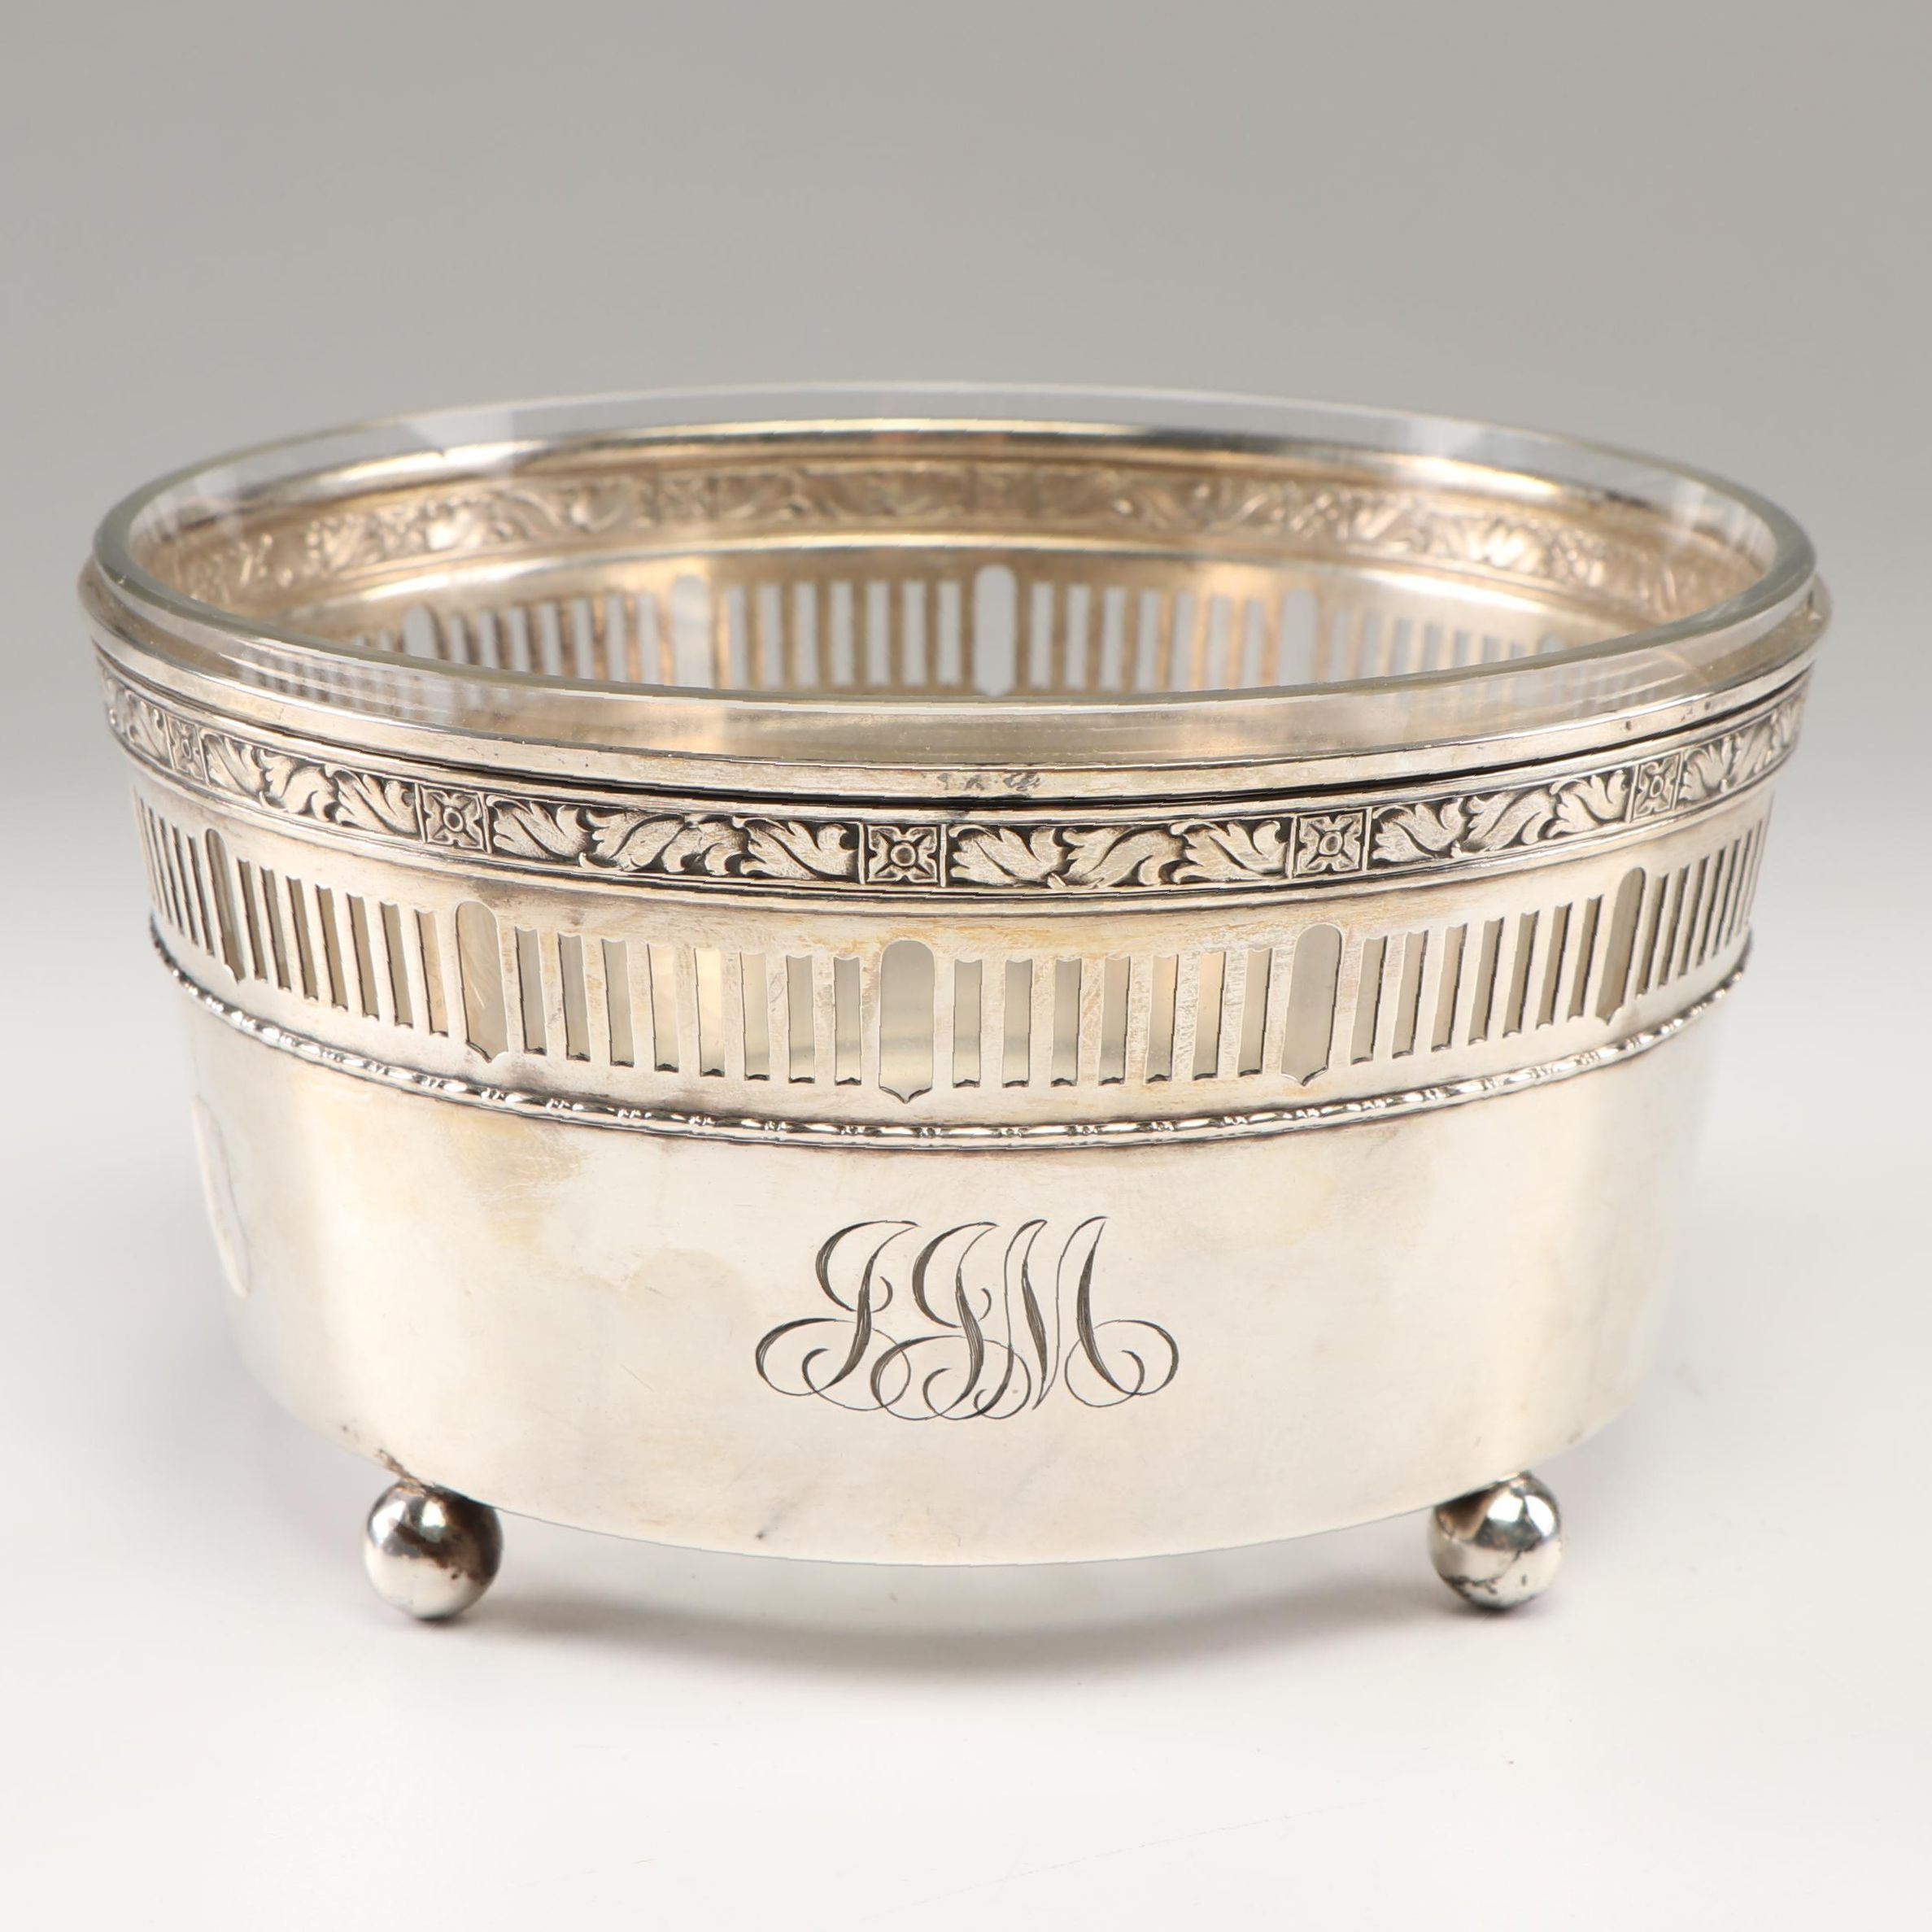 Gorham Cinderella Candy Dish with Sterling Silver Frame, Late 19th Century